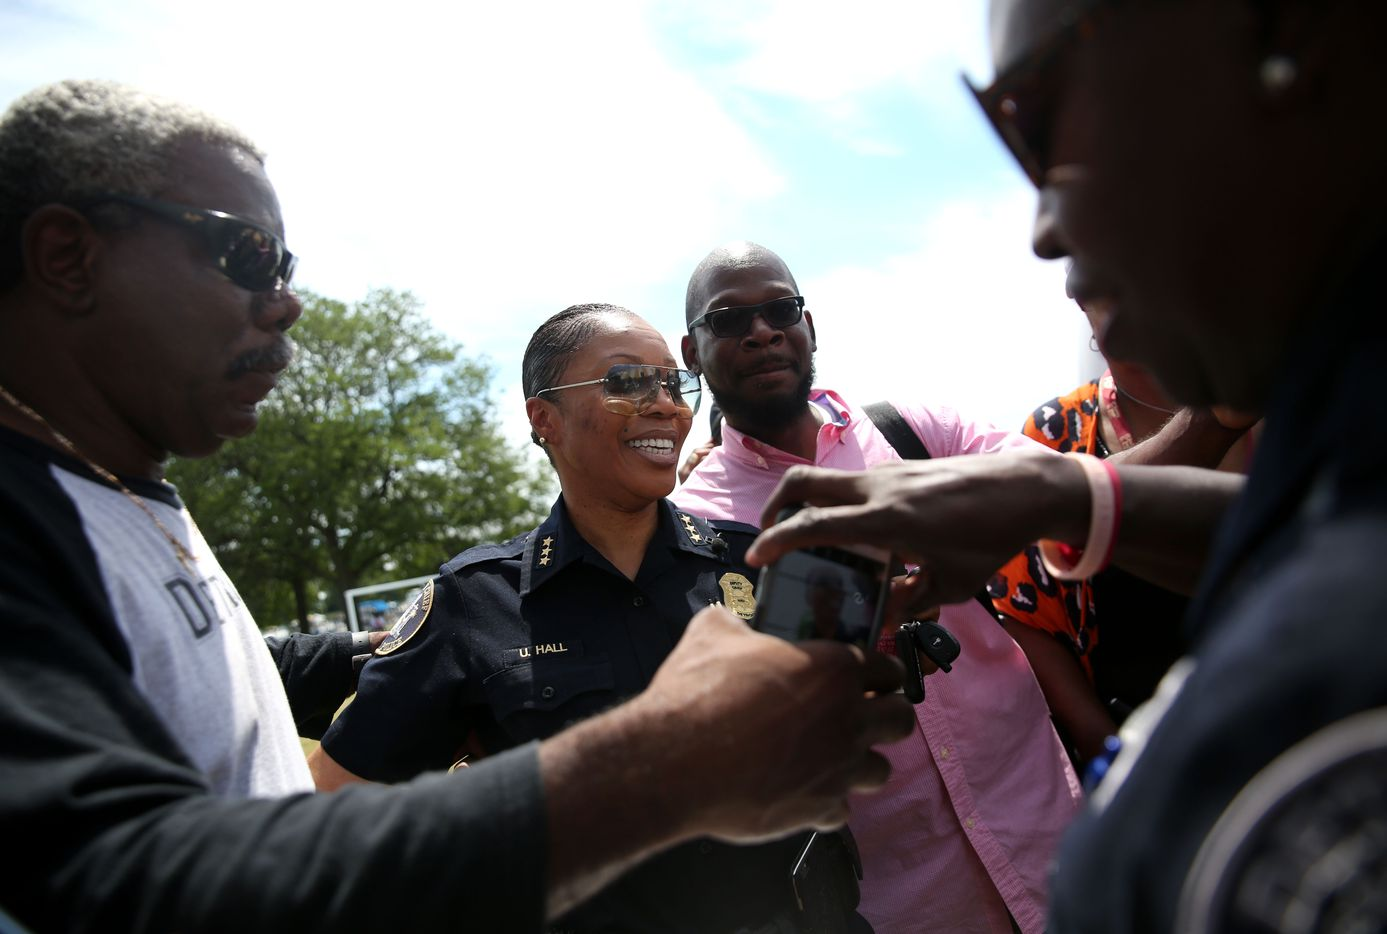 Community members pass a phone to take photos of themselves with Detroit Deputy Chief and newly named Dallas Police Chief Hall.